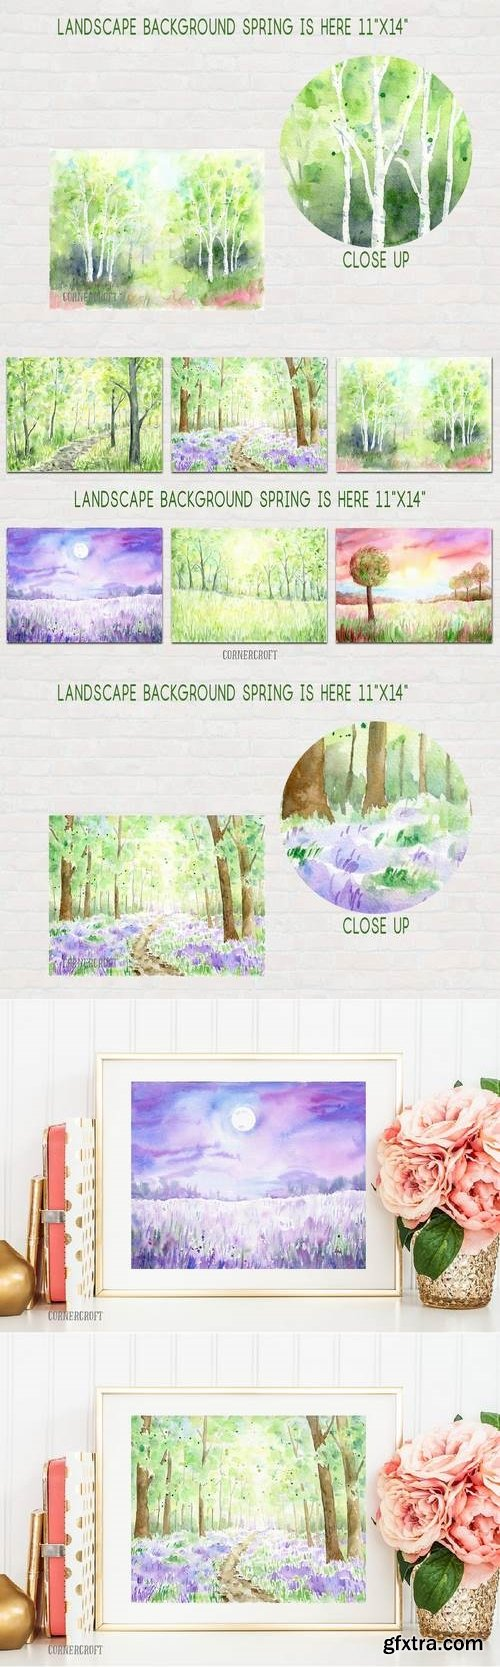 Watercolor Landscape Background Spring is Here